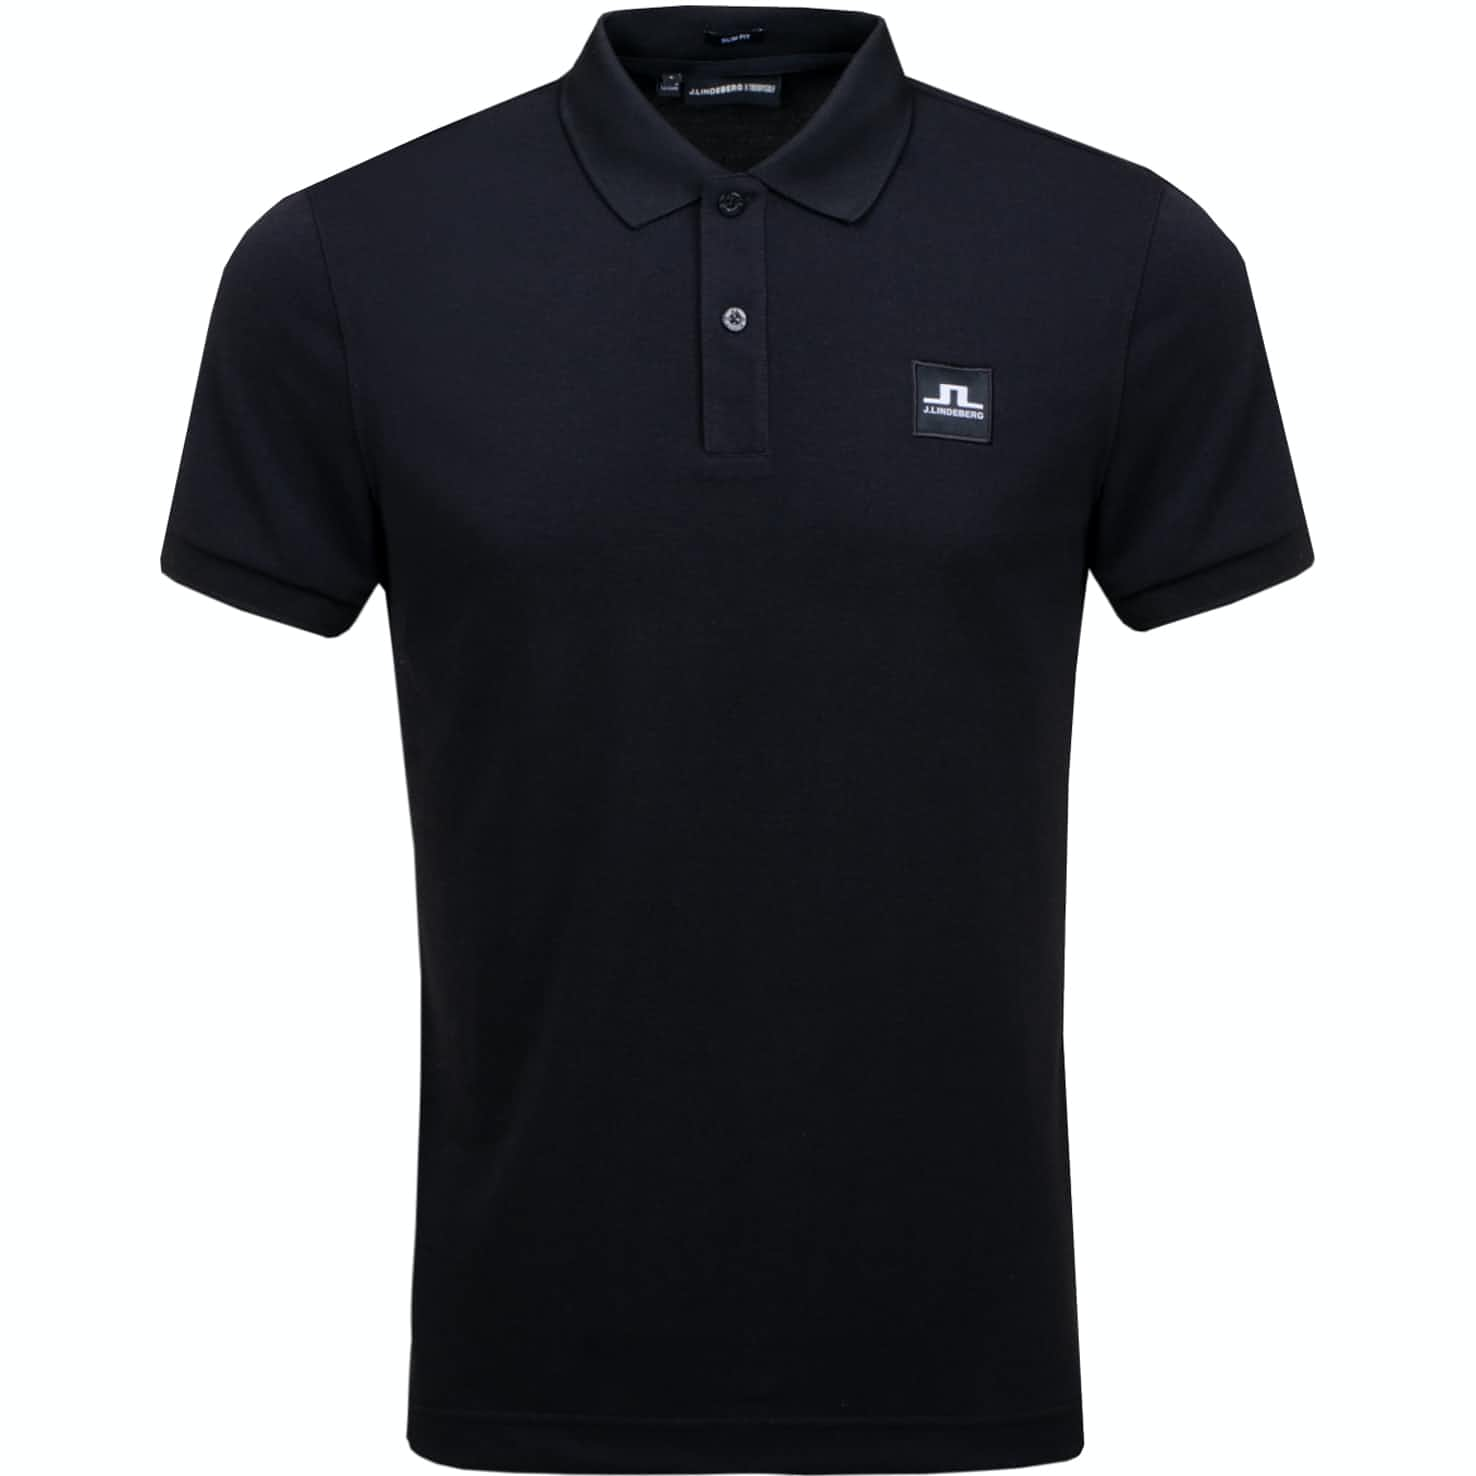 J.Lindeberg x TRENDYGOLF Cool Pique Black - 2019